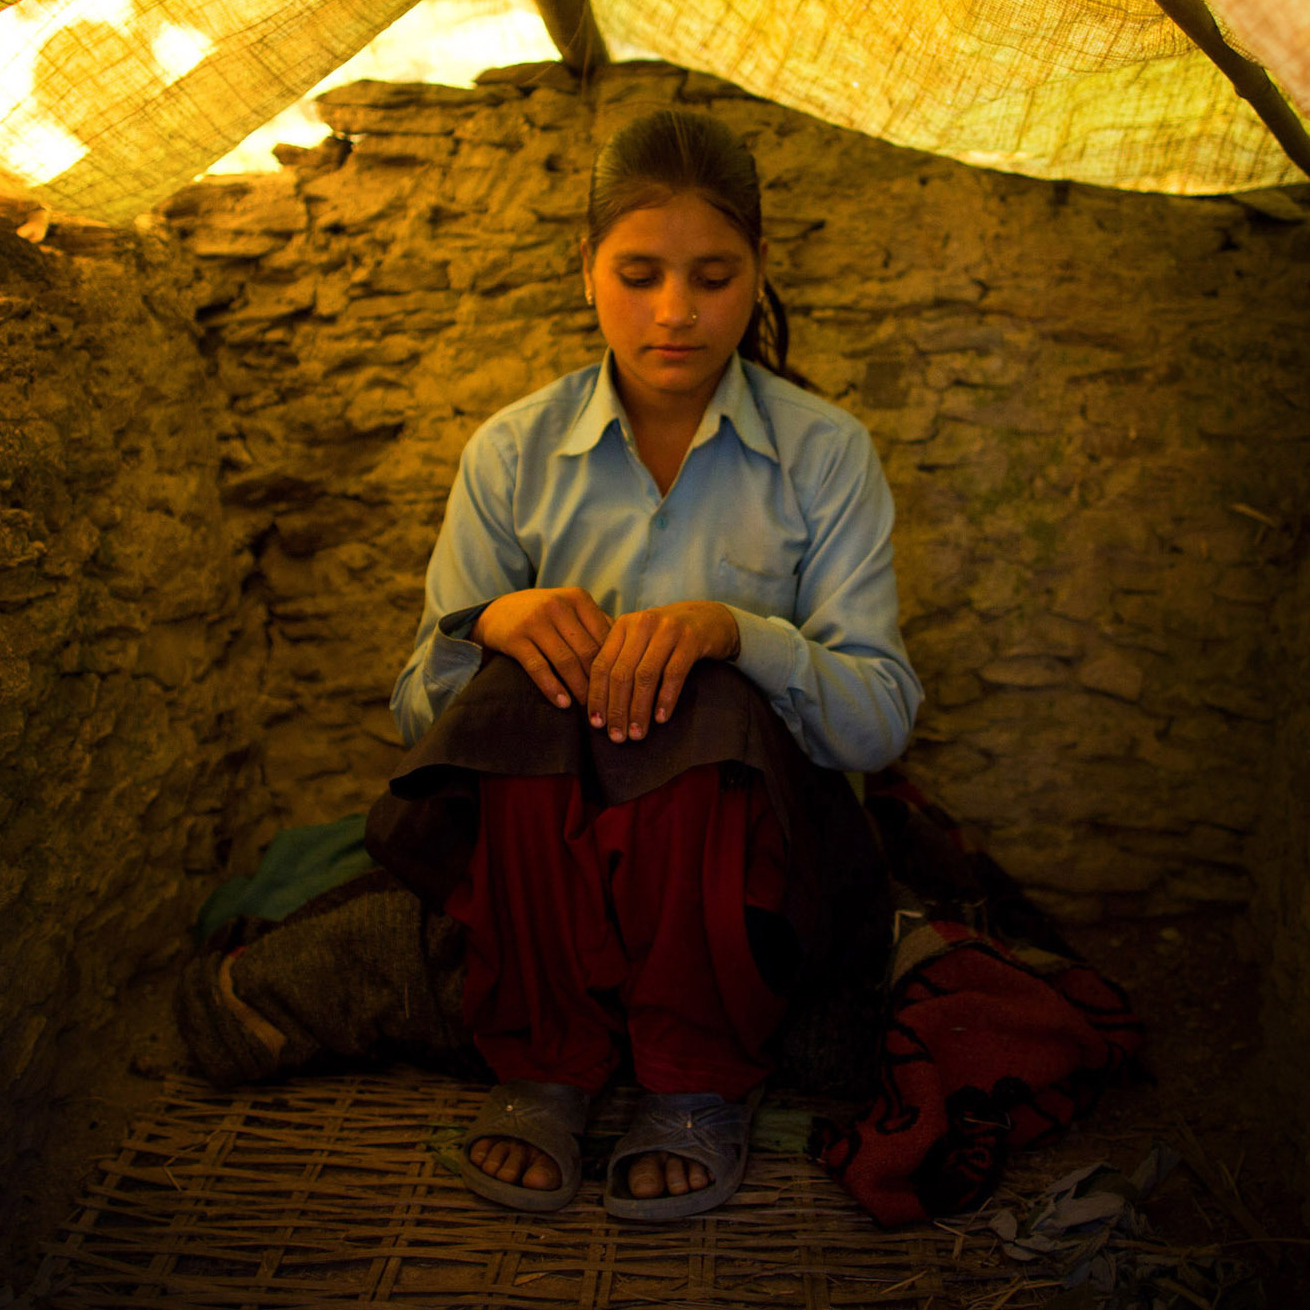 Wearing her school uniform, Jaukala, 14, poses for a photo in the family's chaupadi shelter, a squat shed measuring approximately 1 meter by 2 meters, in Rima village, Achham, Nepal. A tarp serves as a temporary roof to this structure, still under construction. Jaukala must sleep here while she has her period.